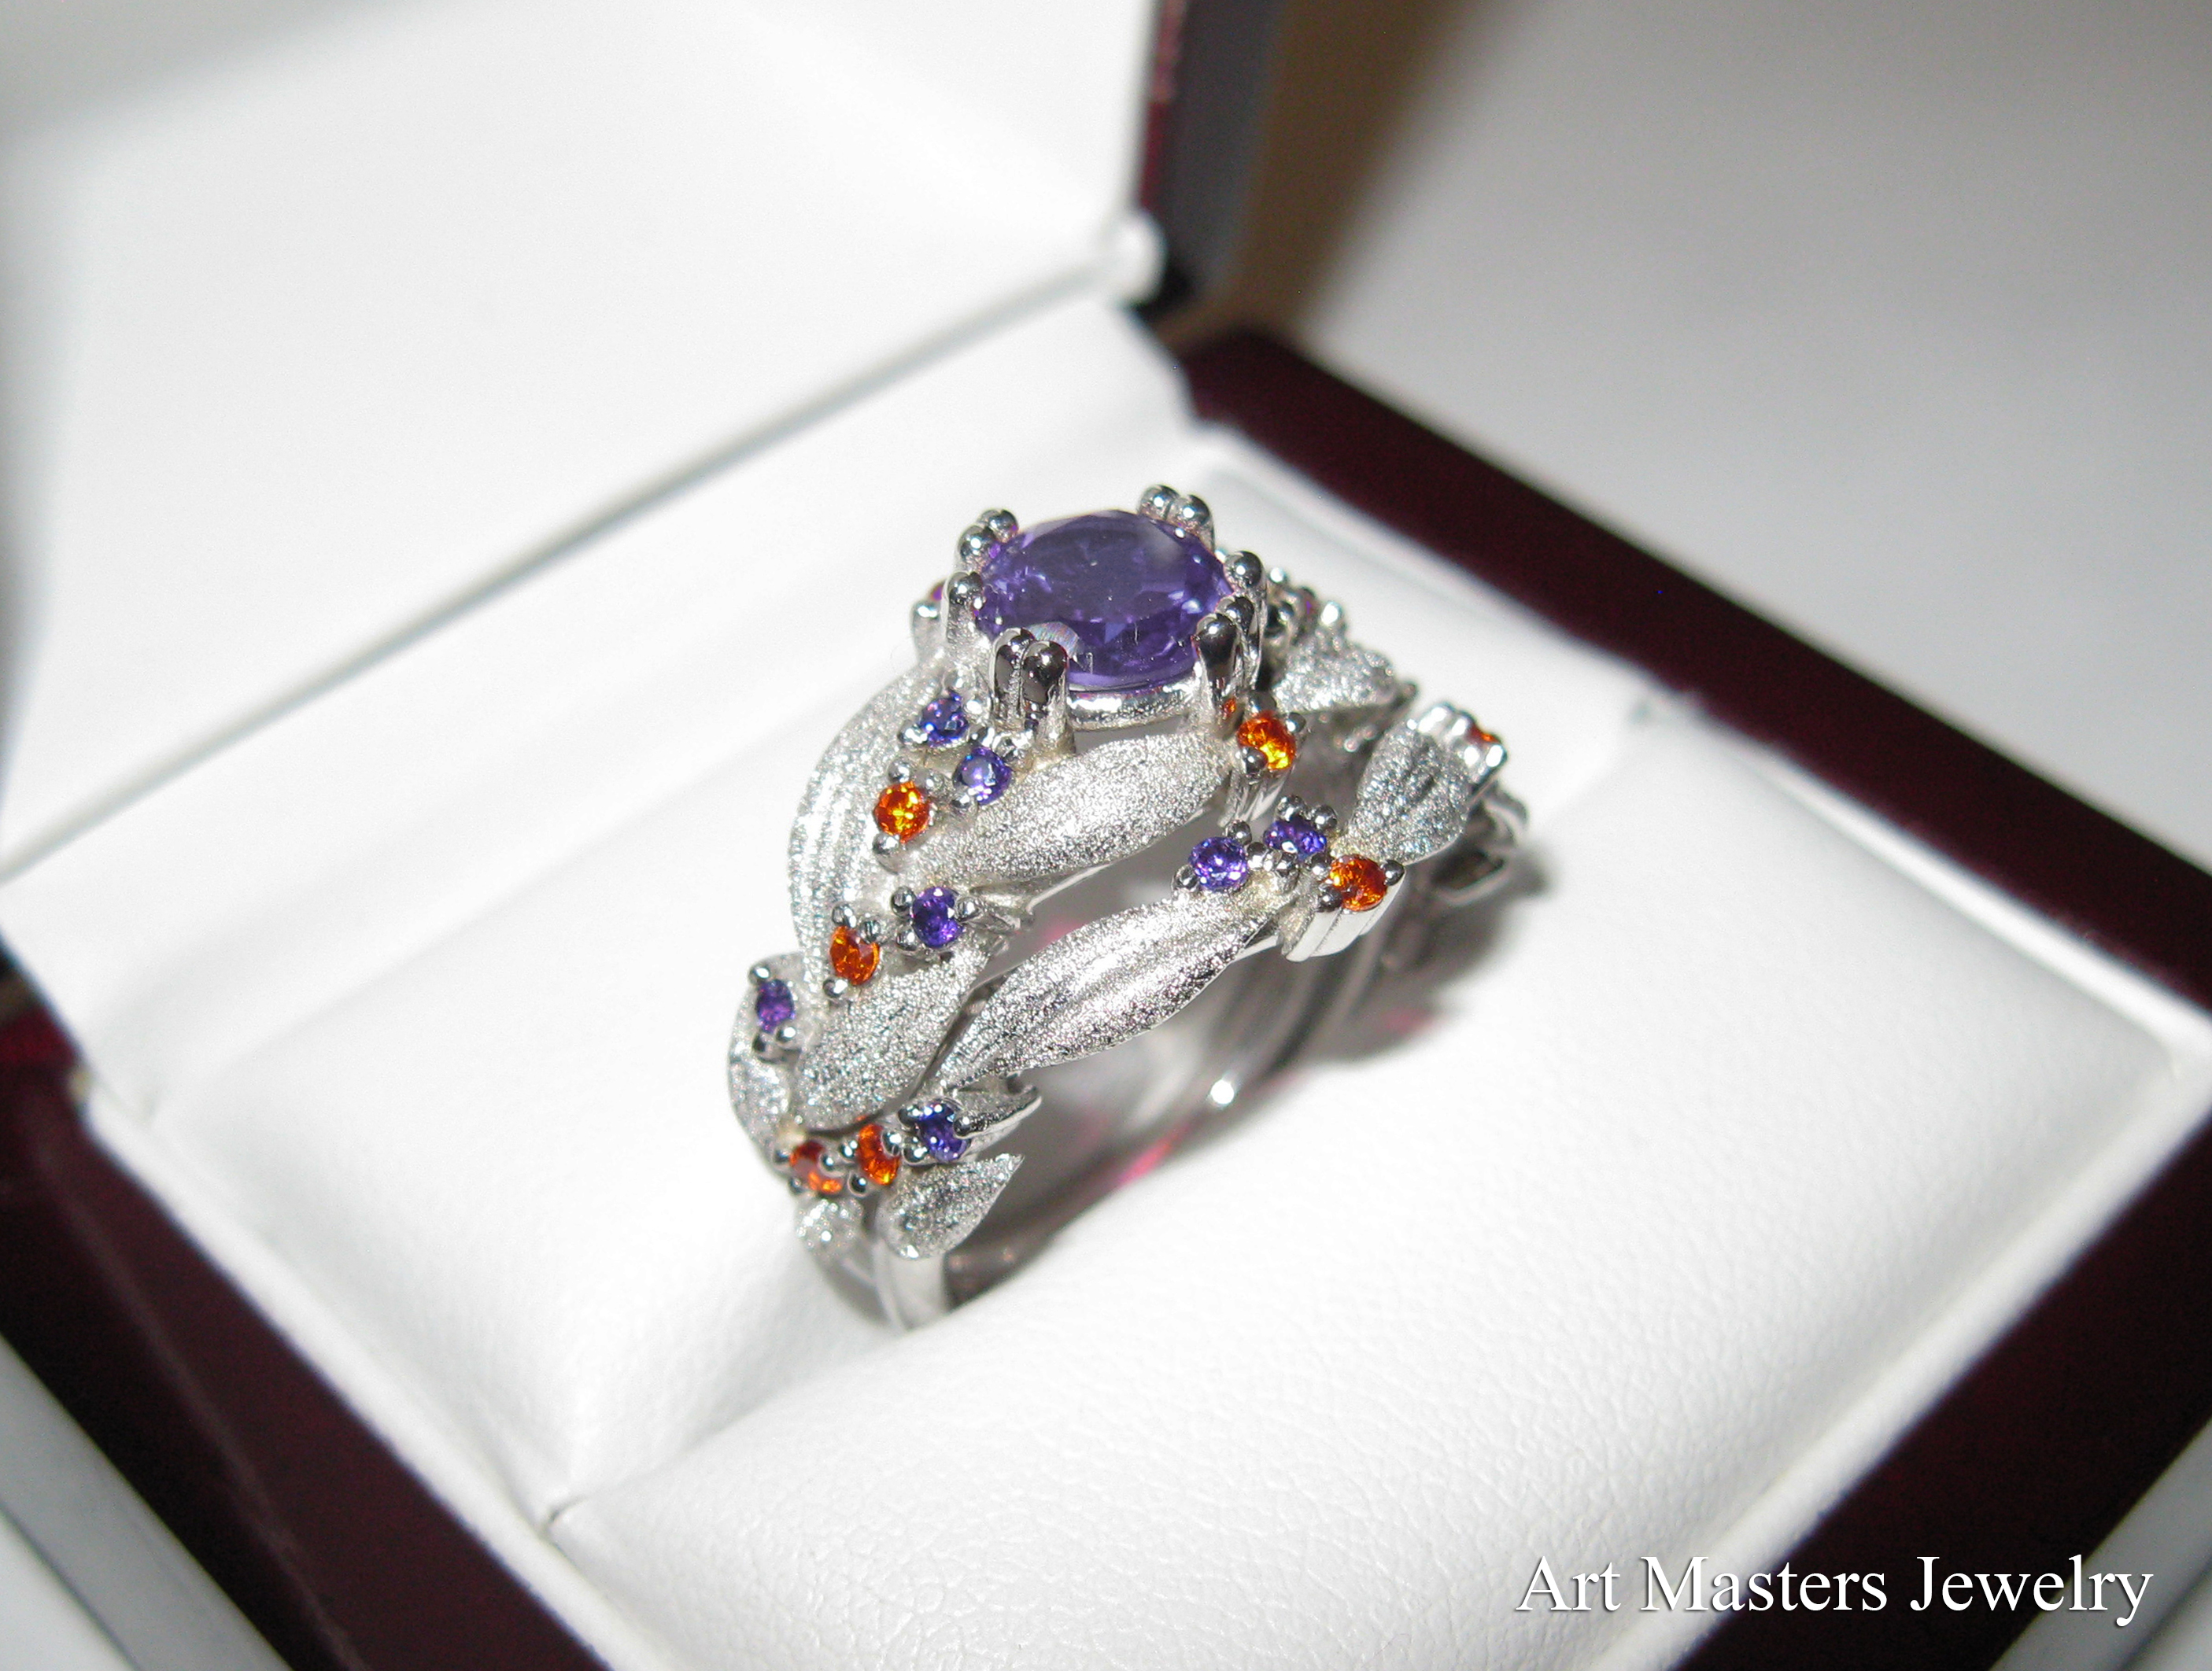 artmastersjewelry wordpress sapphire mens wedding band Nature Classic 14K White Gold 1 0 Ct Lavender Amethyst Orange Sapphire Leaf Vine Engagement Ring Wedding